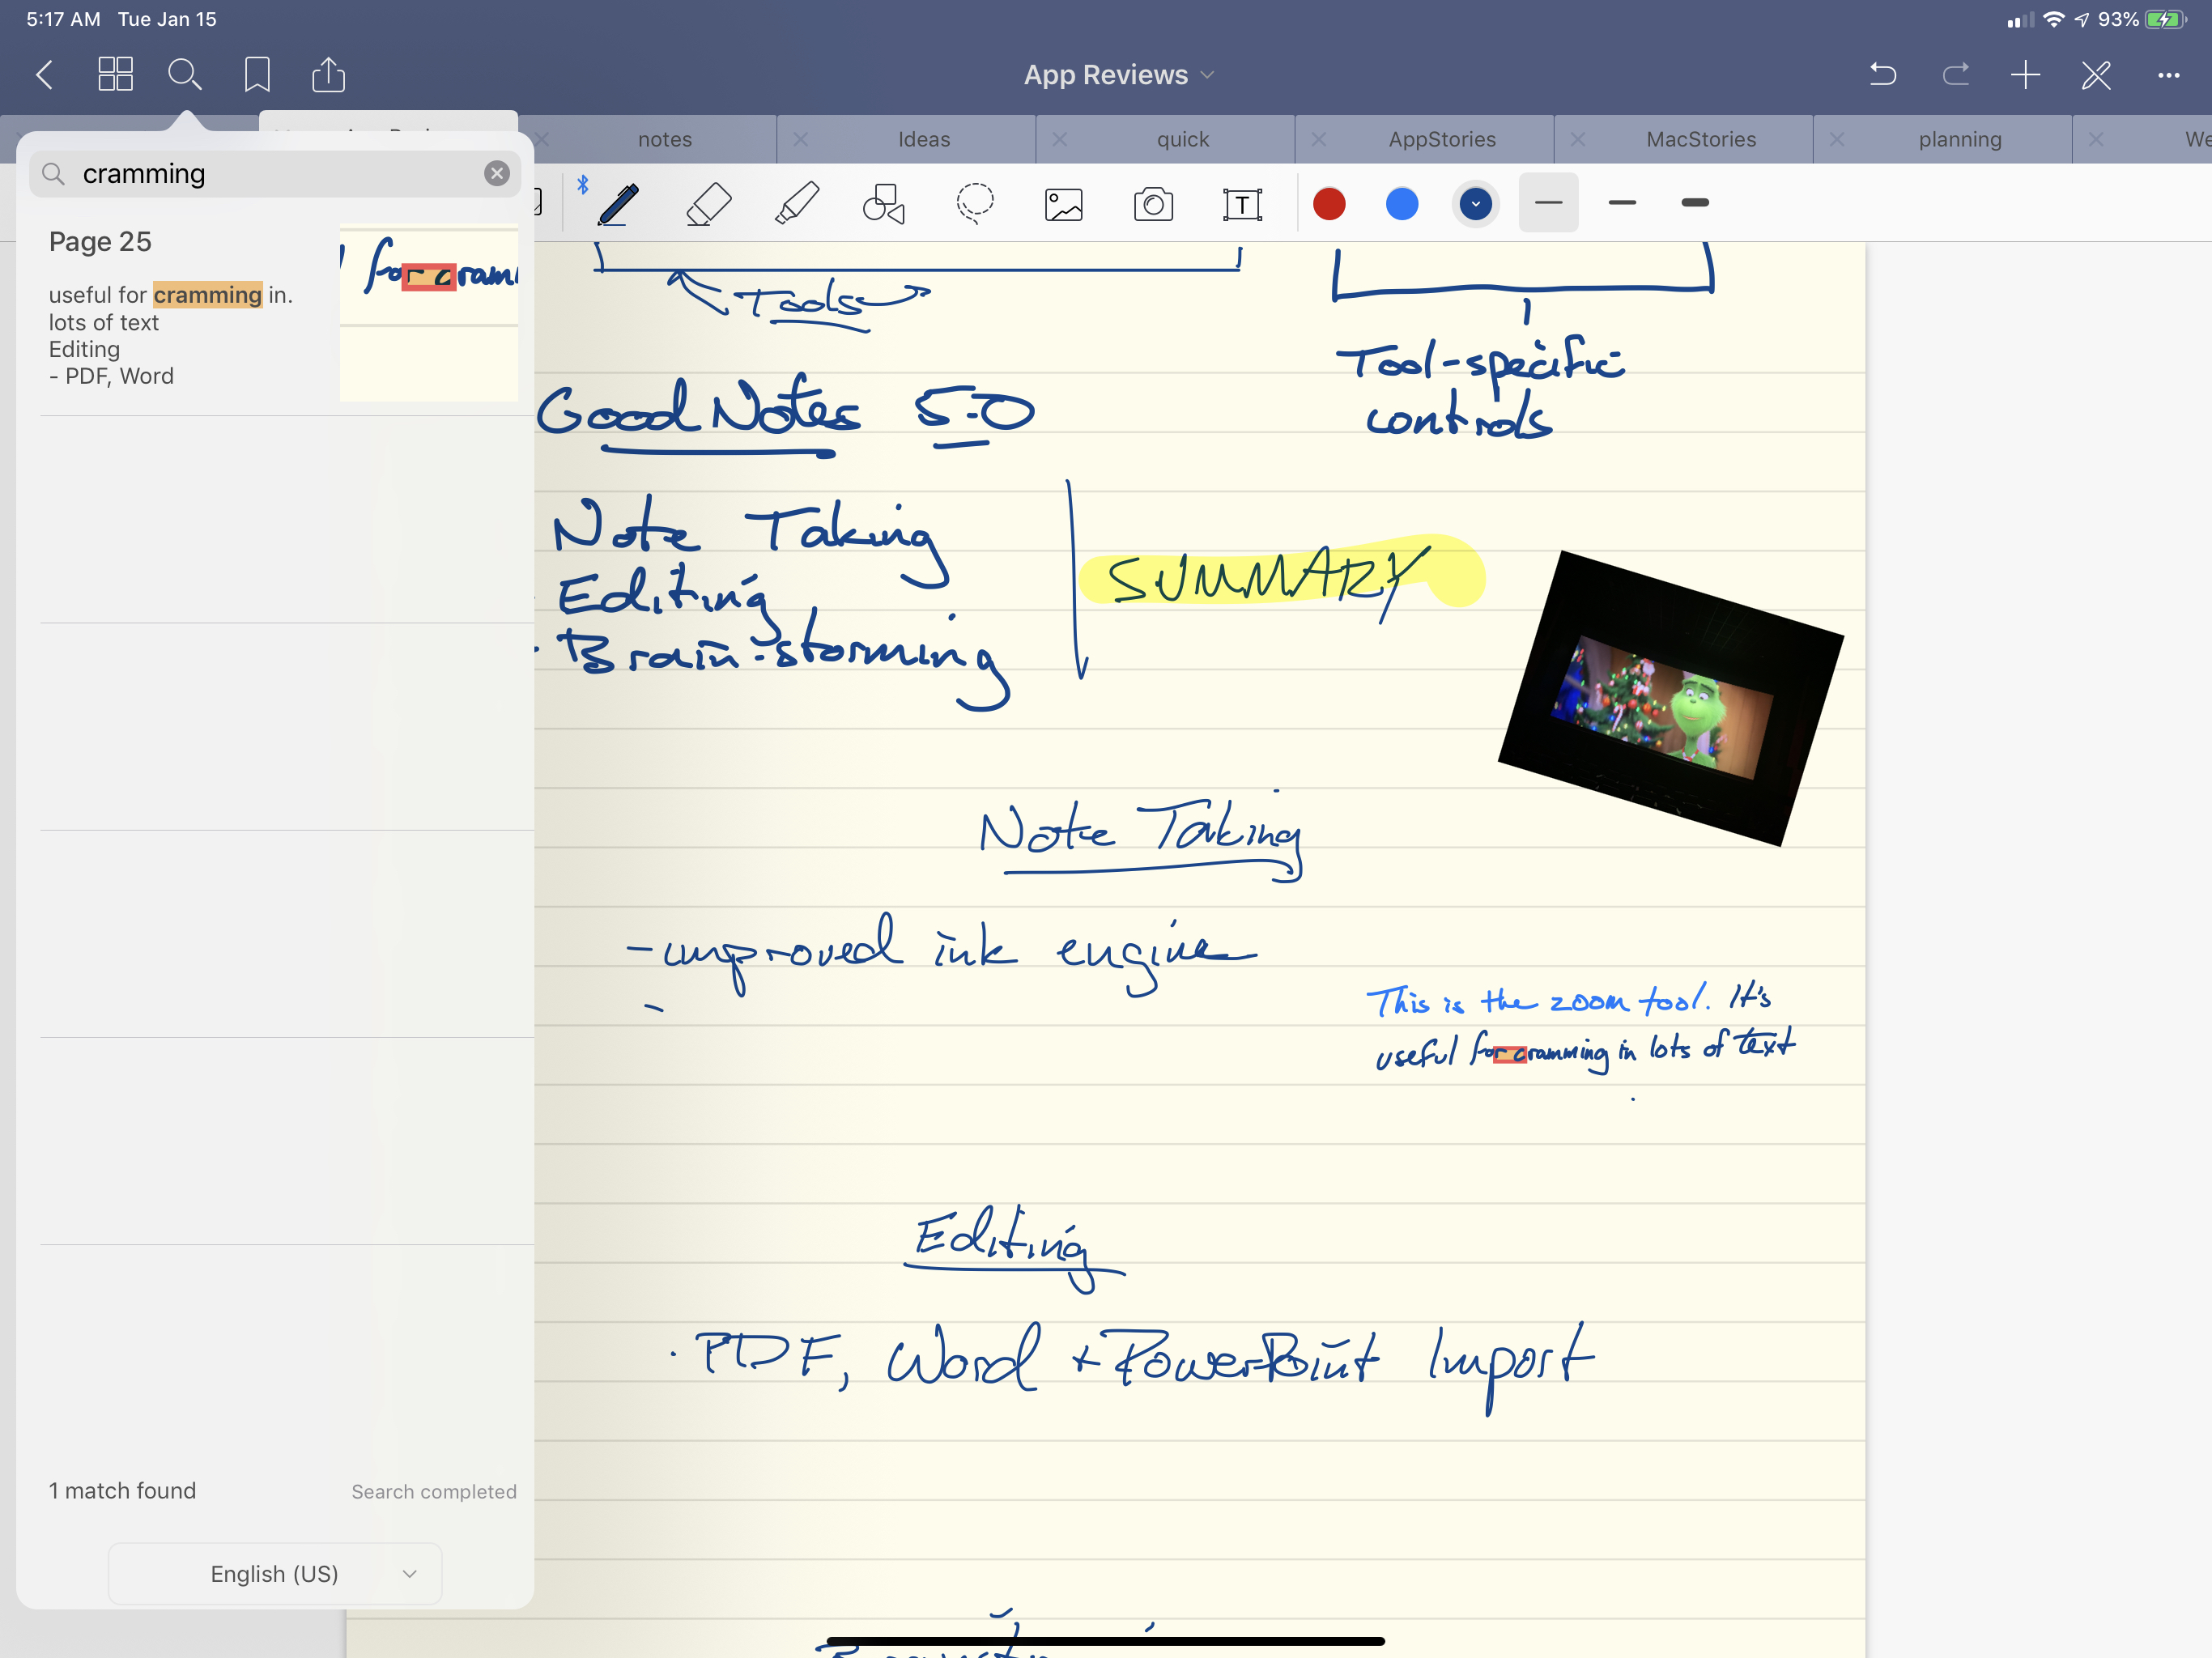 Search is also available inside individual notebooks.